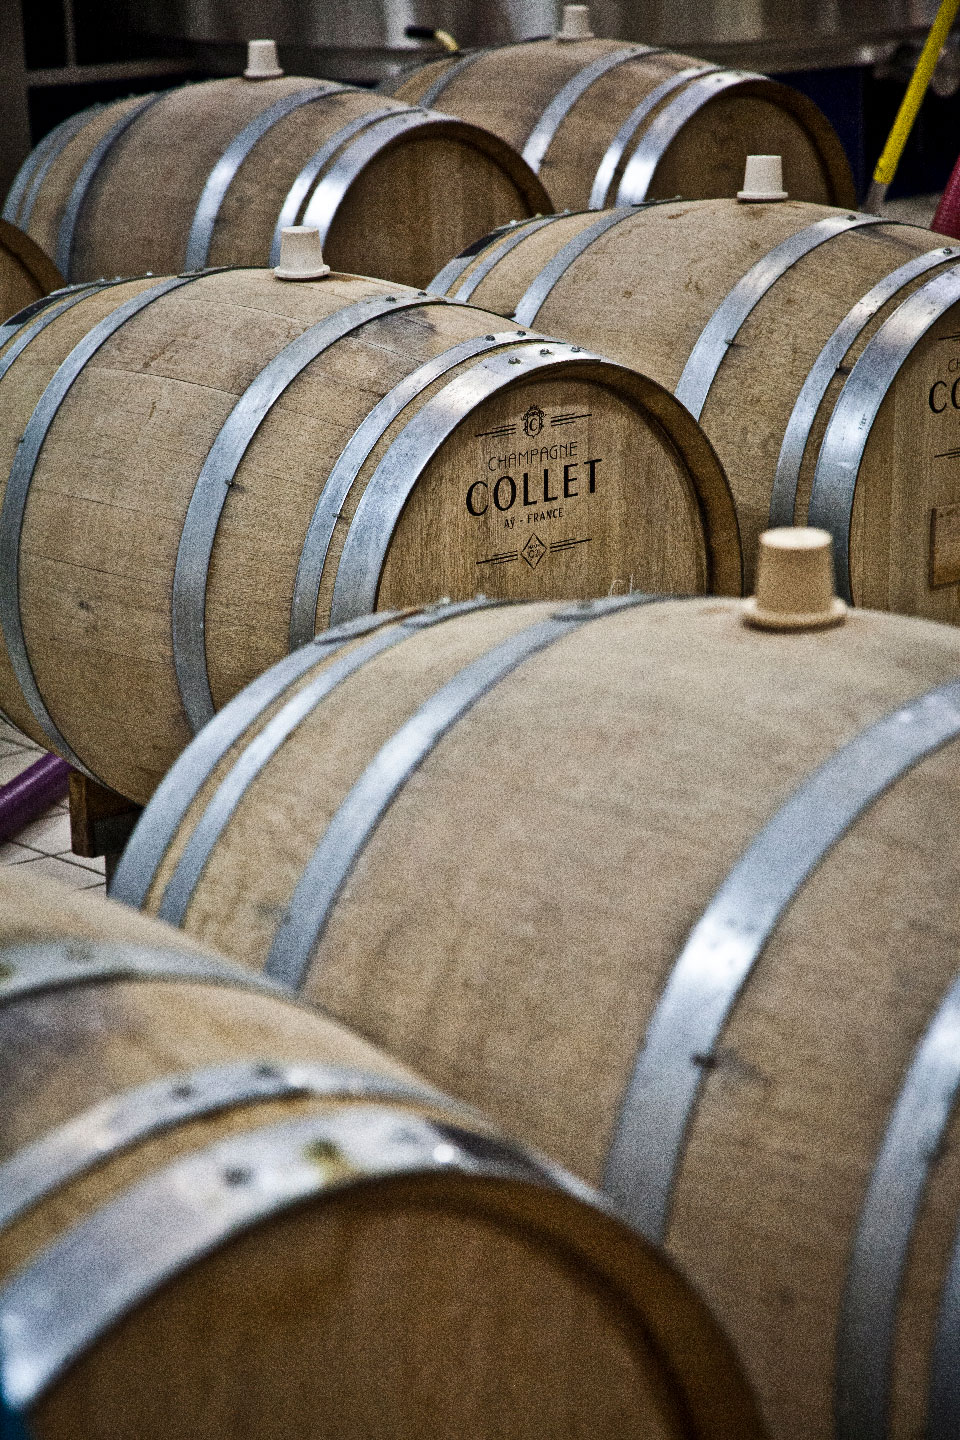 Locally made oak barrels at Collet.